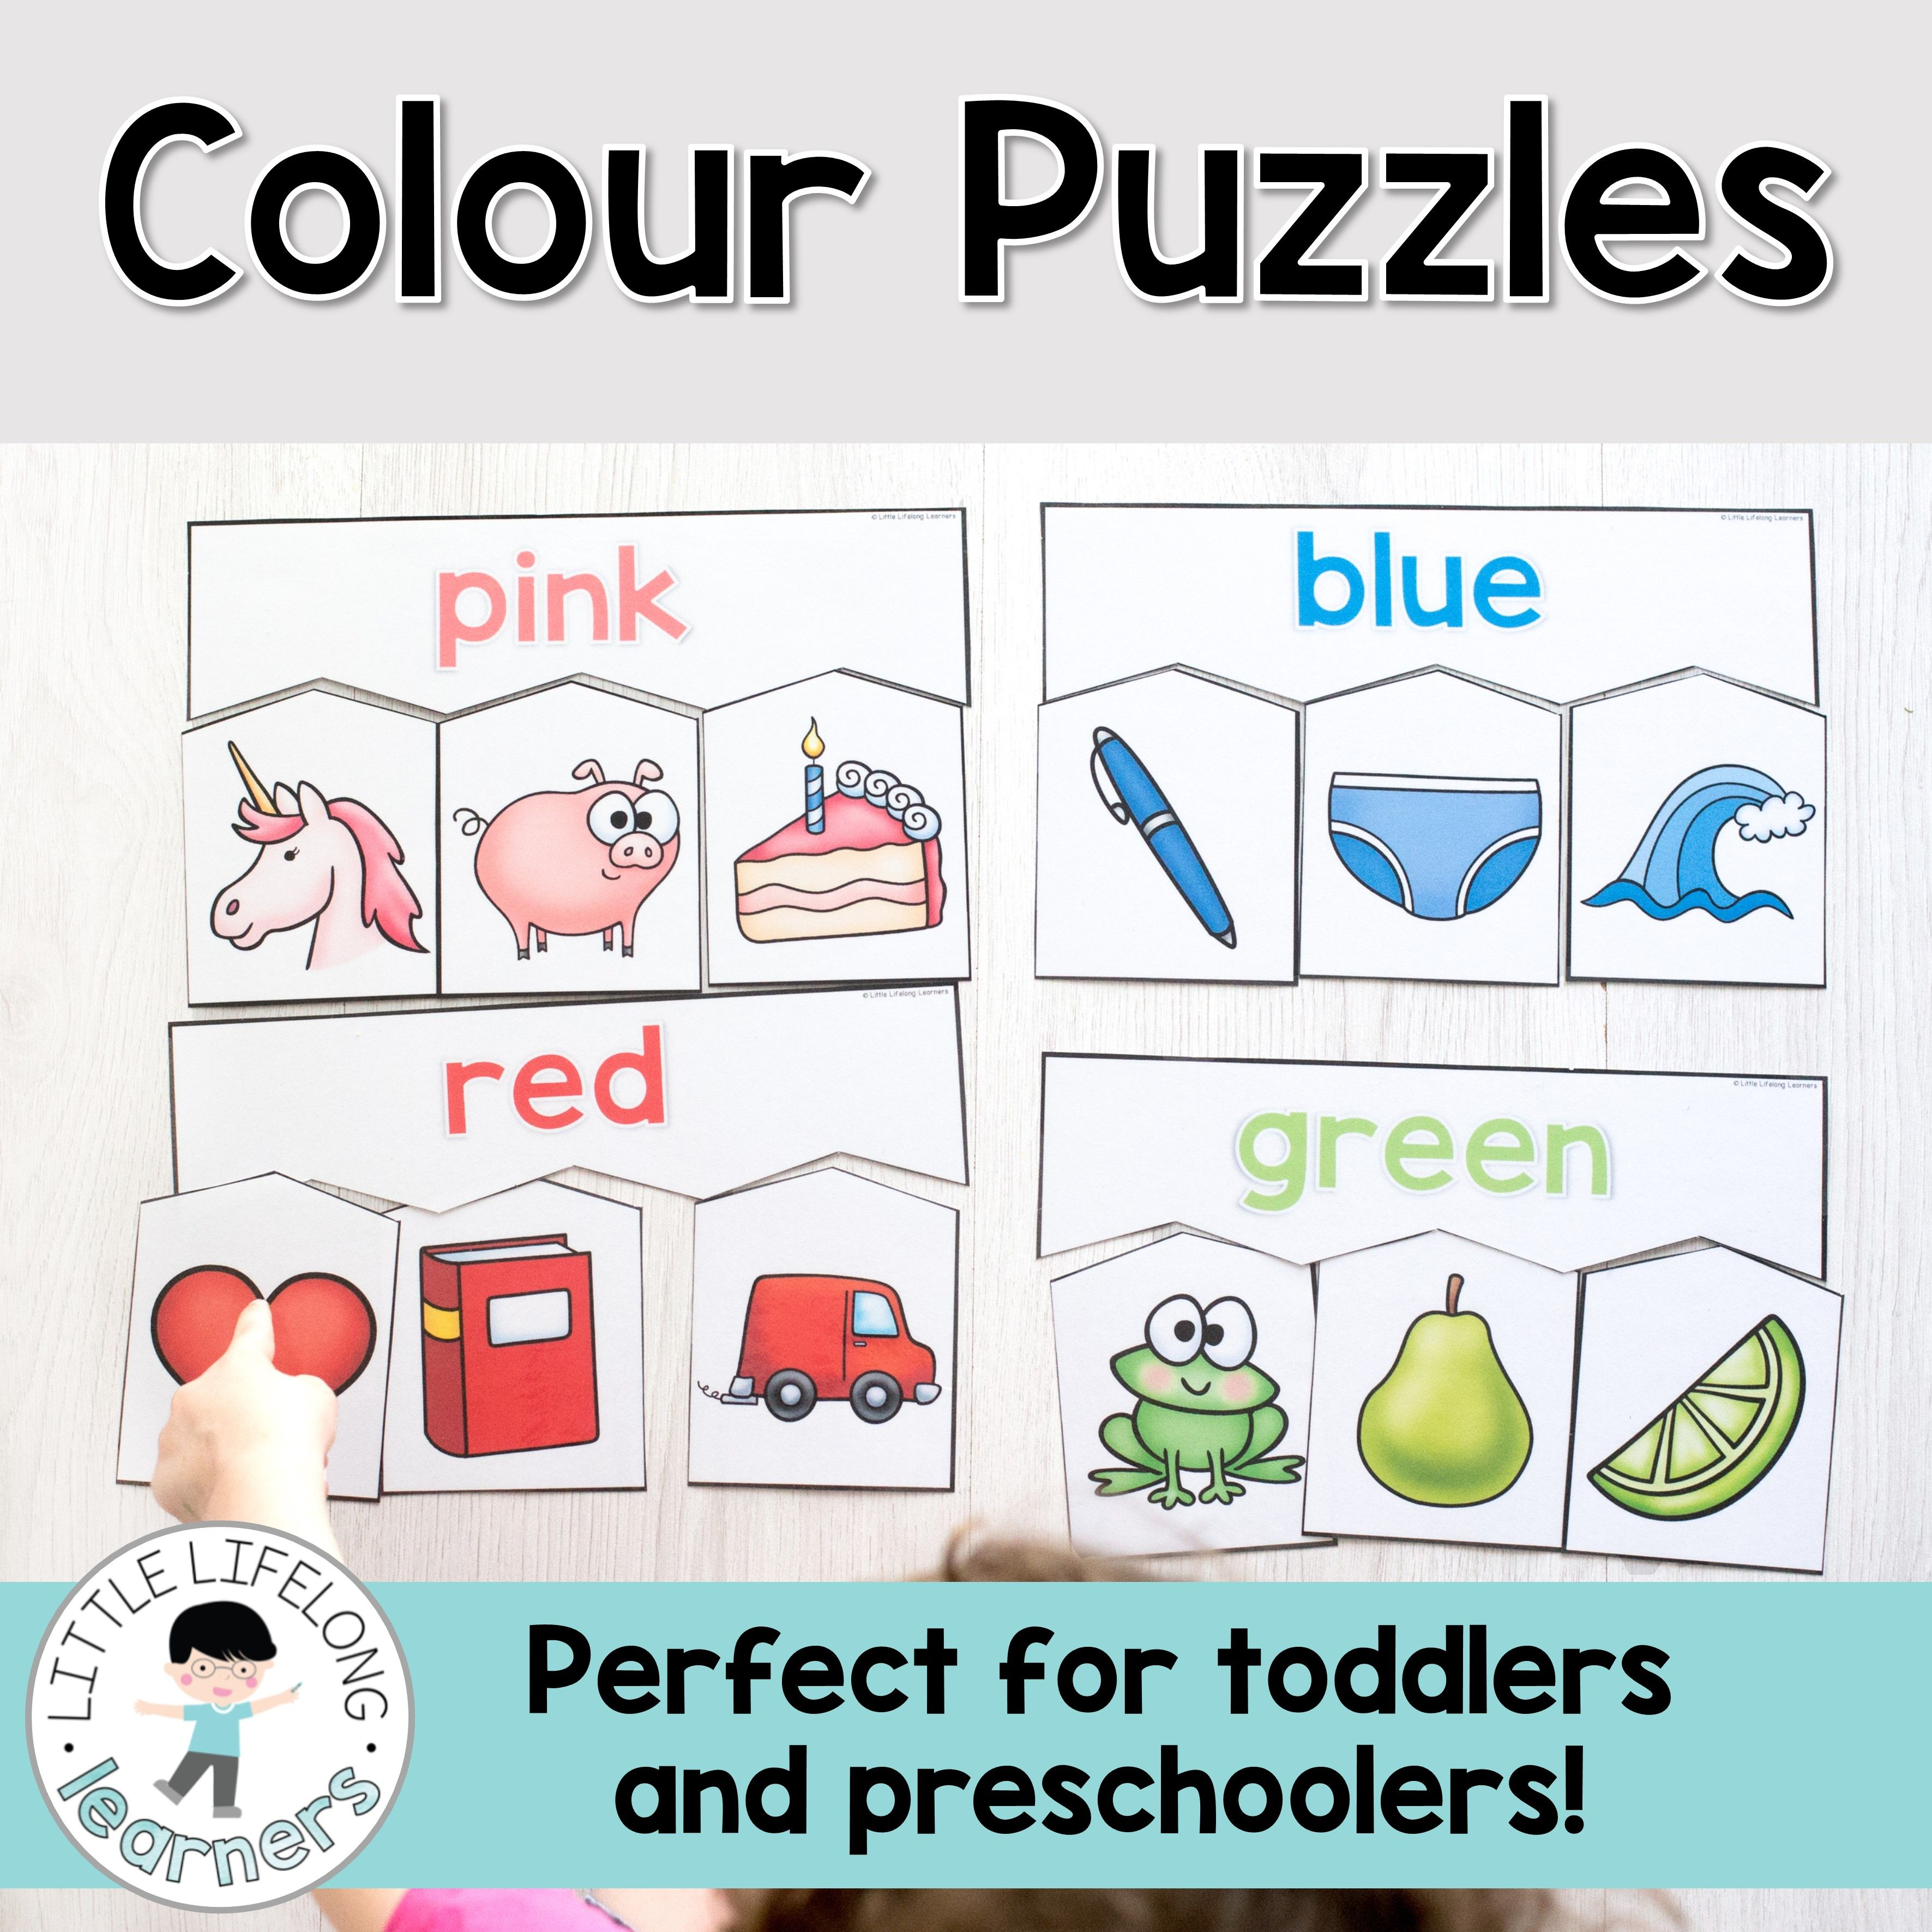 Colour Puzzles For Toddlers And Preschoolers | Toddler And - Printable Puzzles For 3 Year Olds